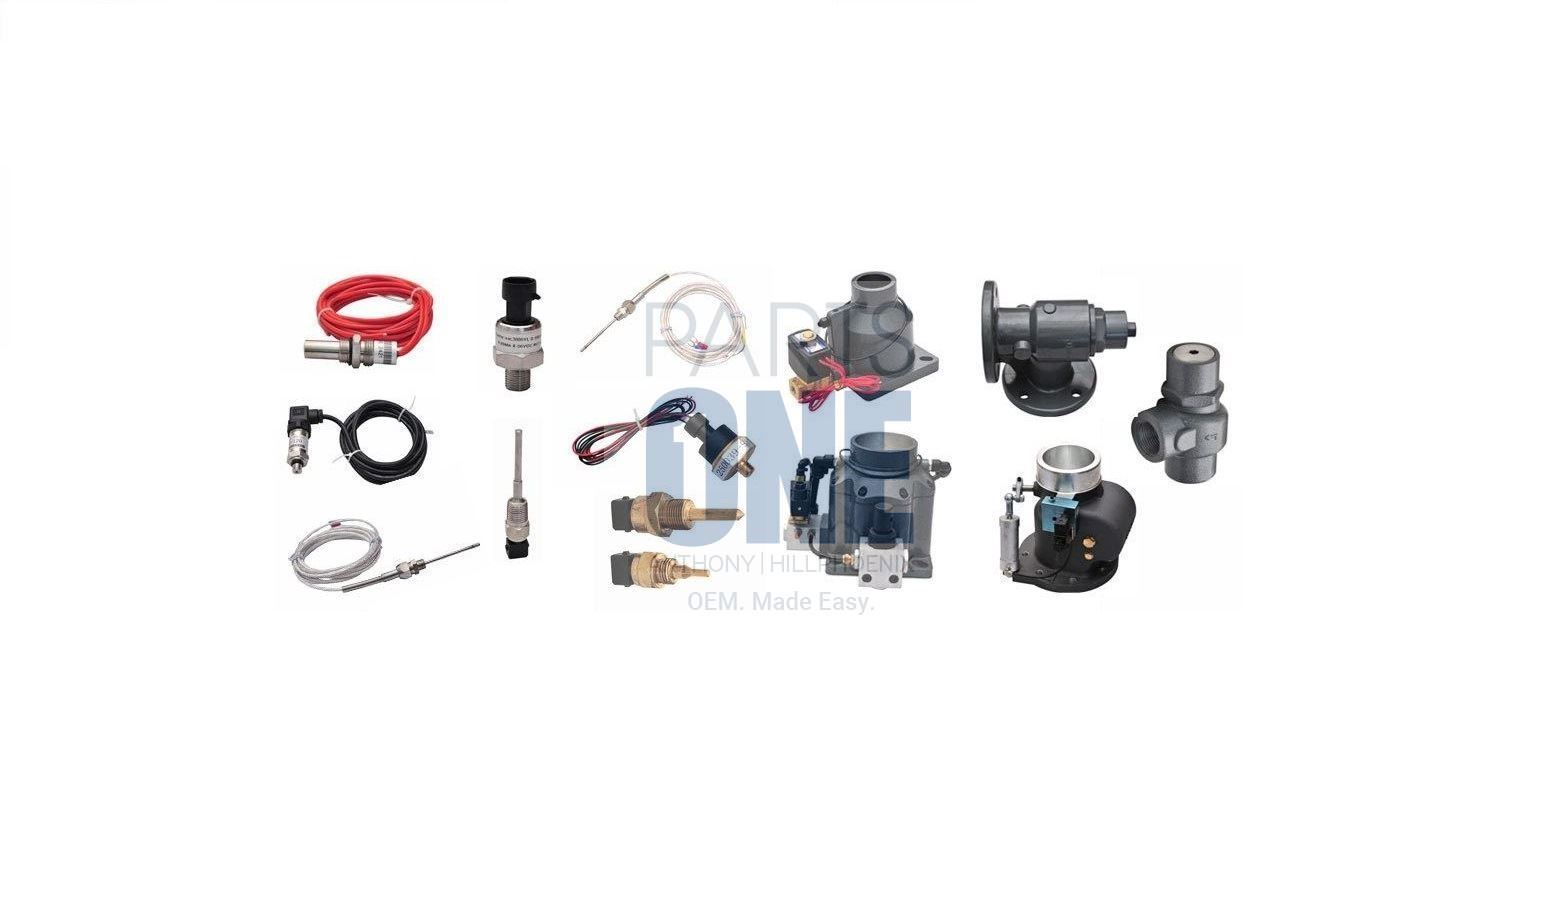 Picture for category Refrigeration Equipment